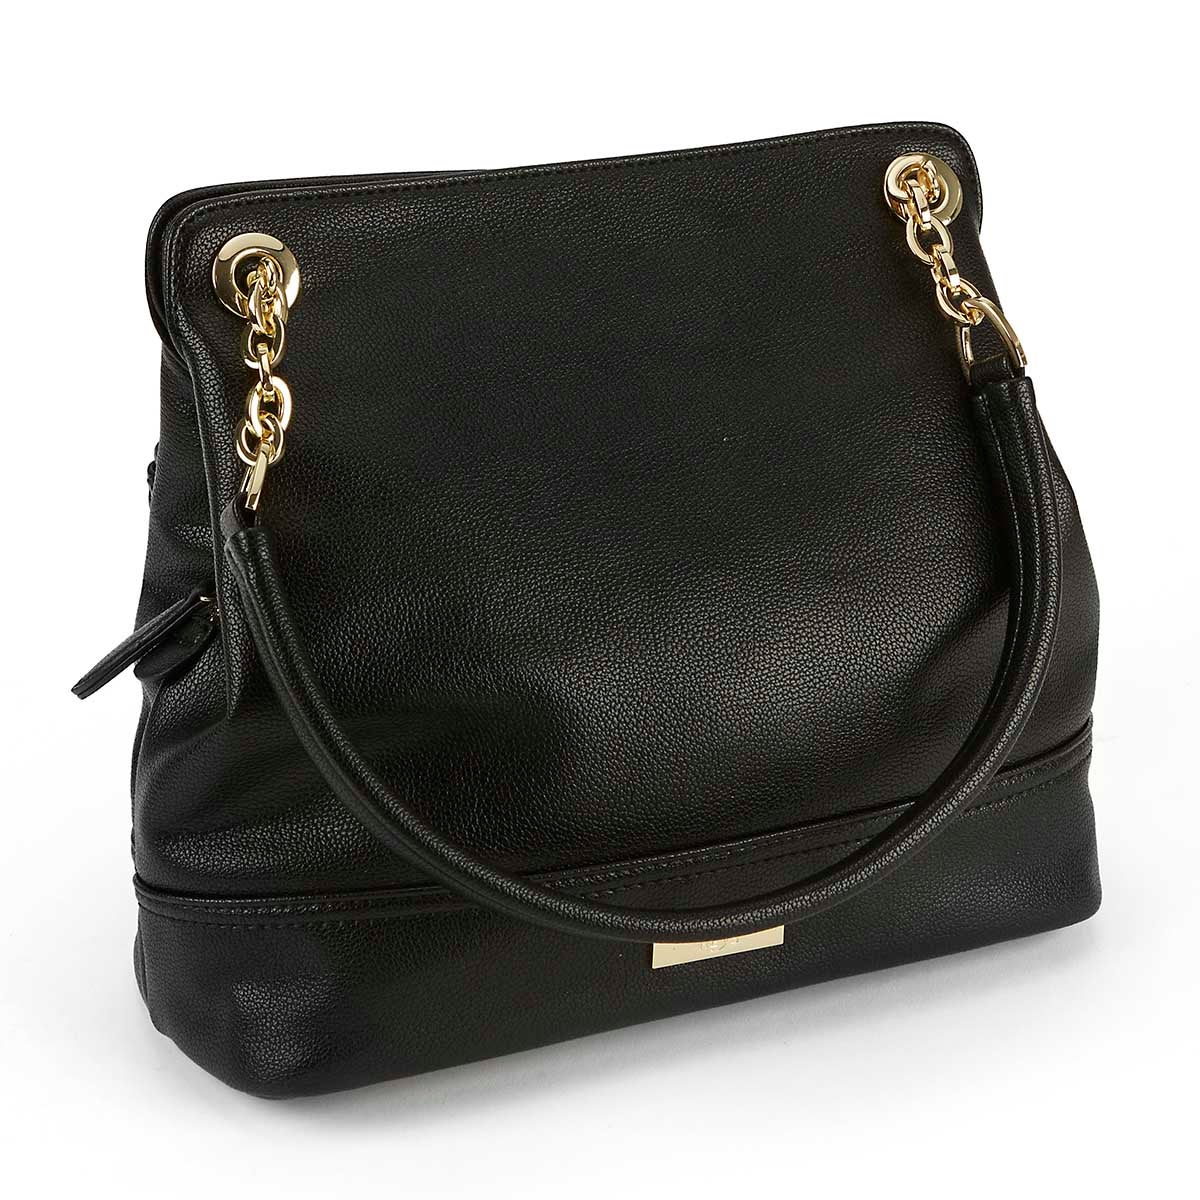 Lds Chain blk double strap shoulder bag